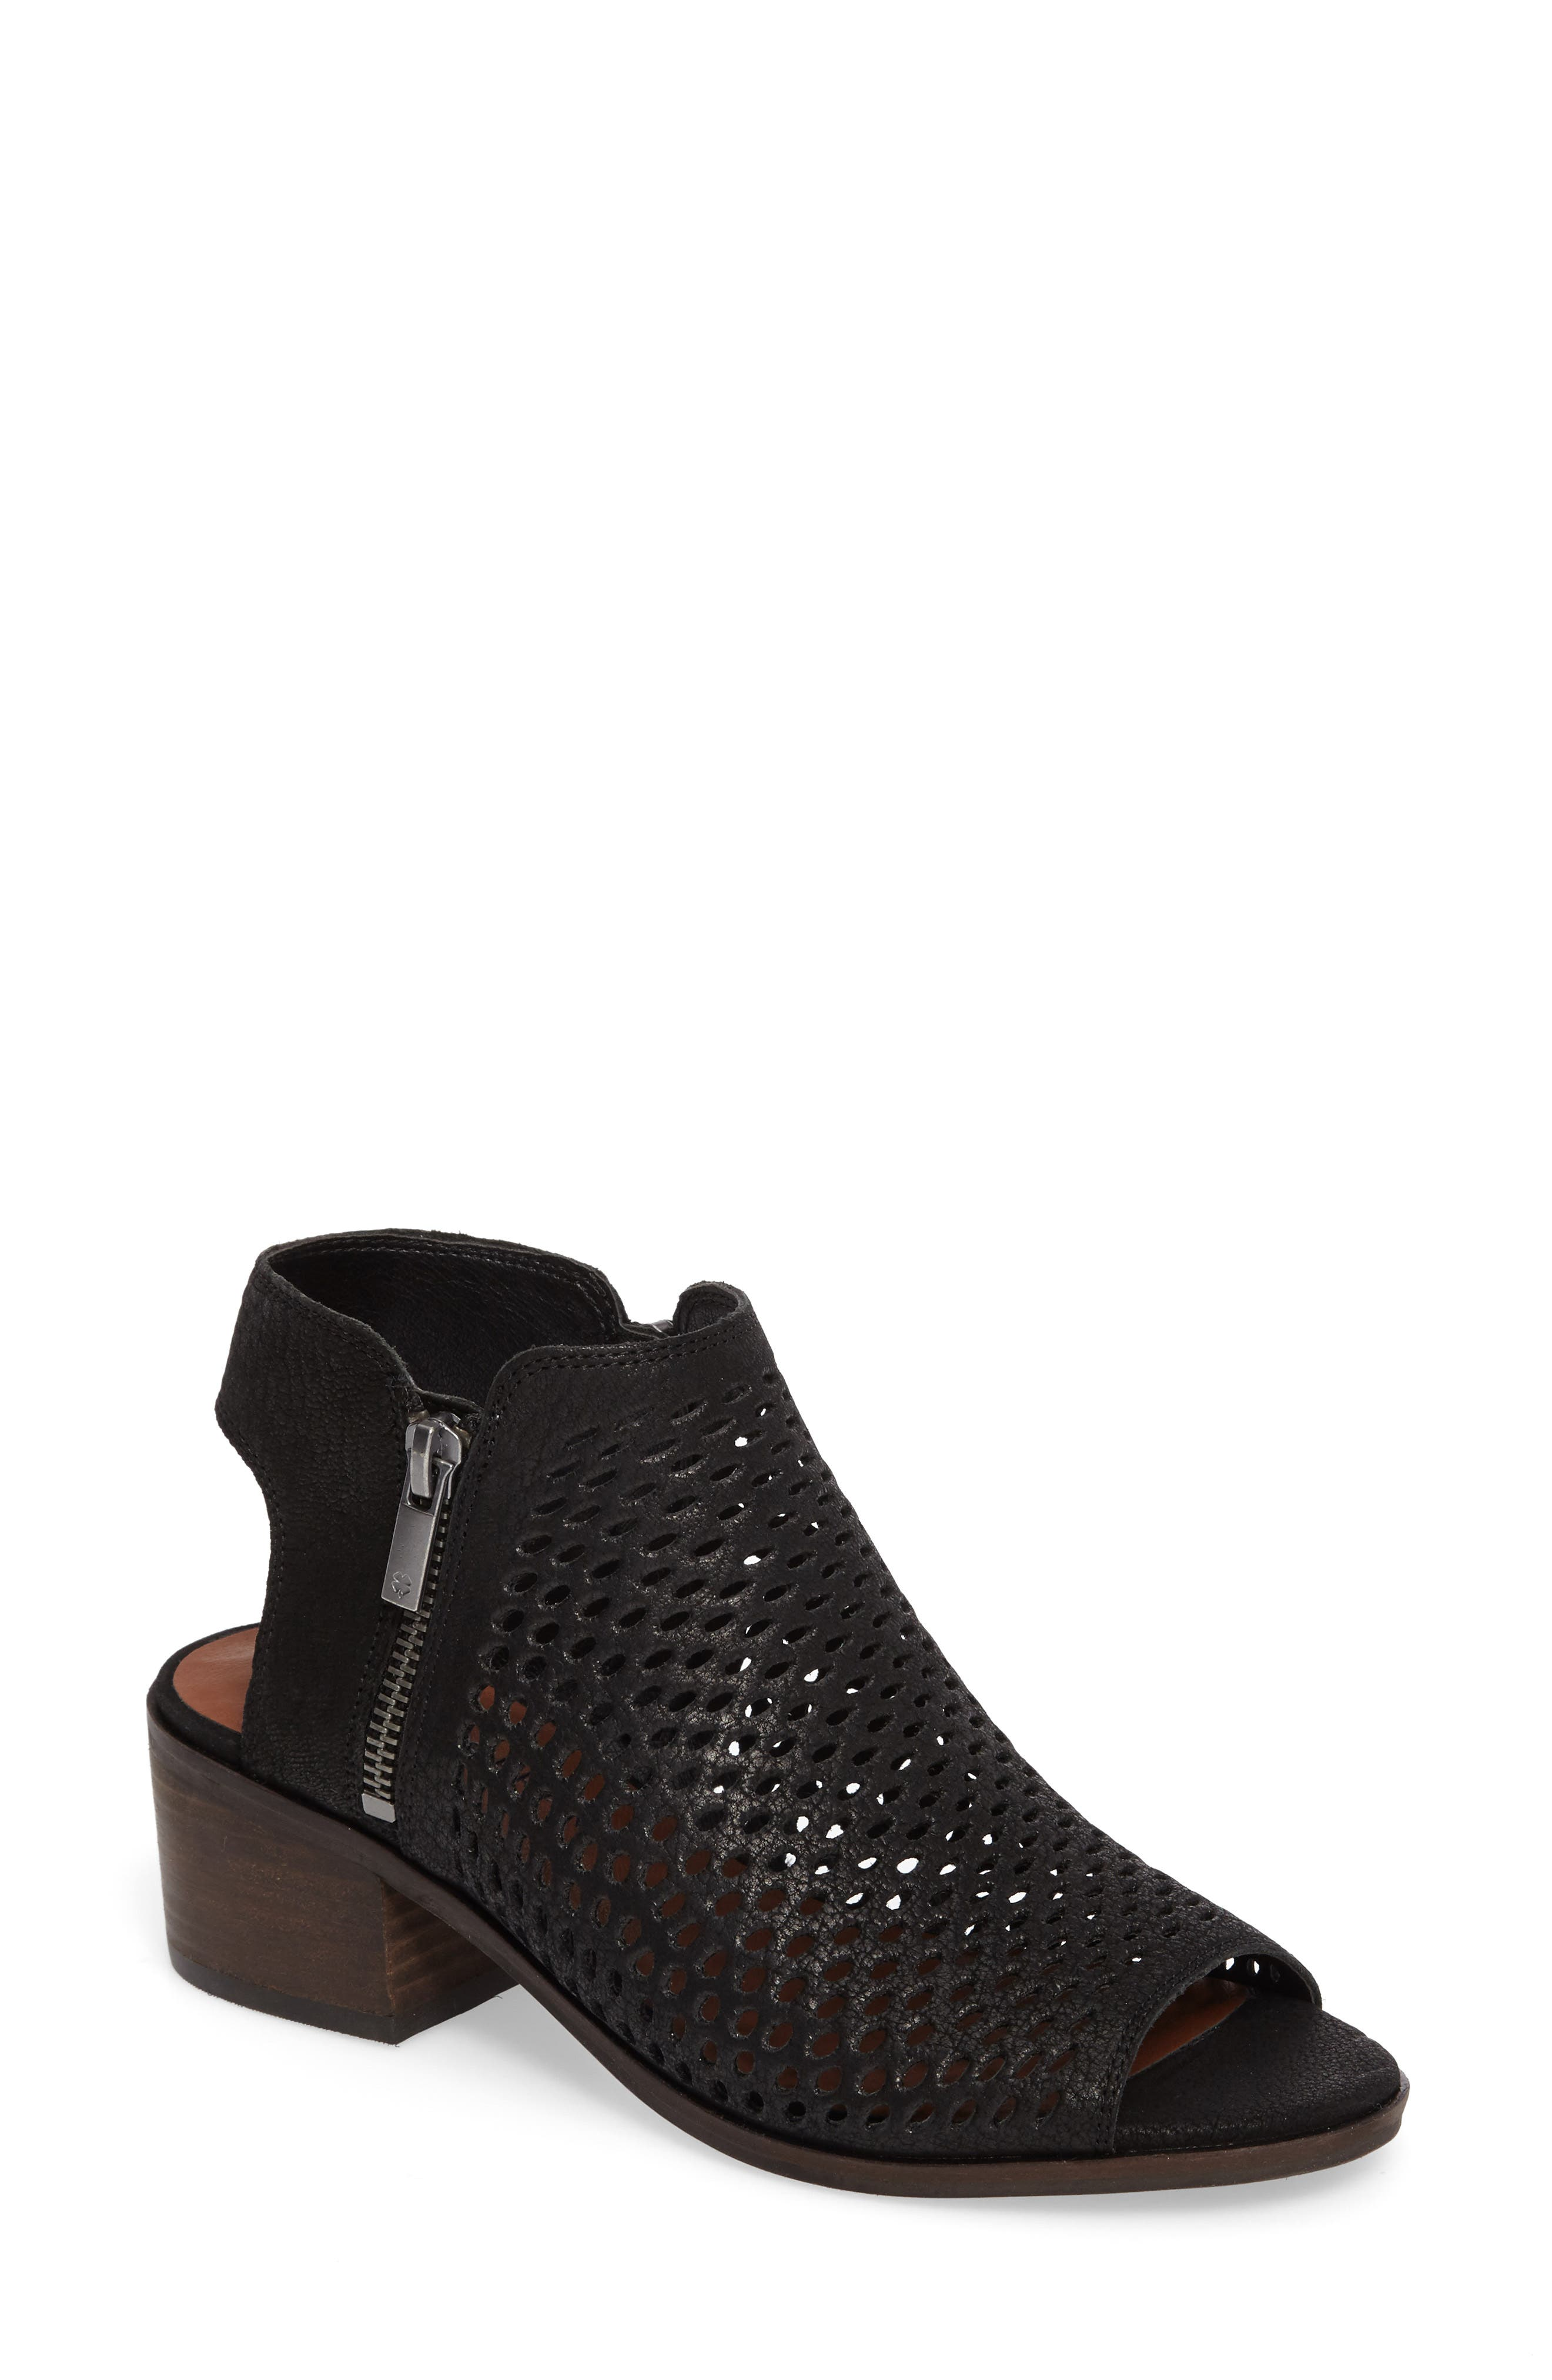 Nelwyna Perforated Bootie Sandal,                             Main thumbnail 1, color,                             001